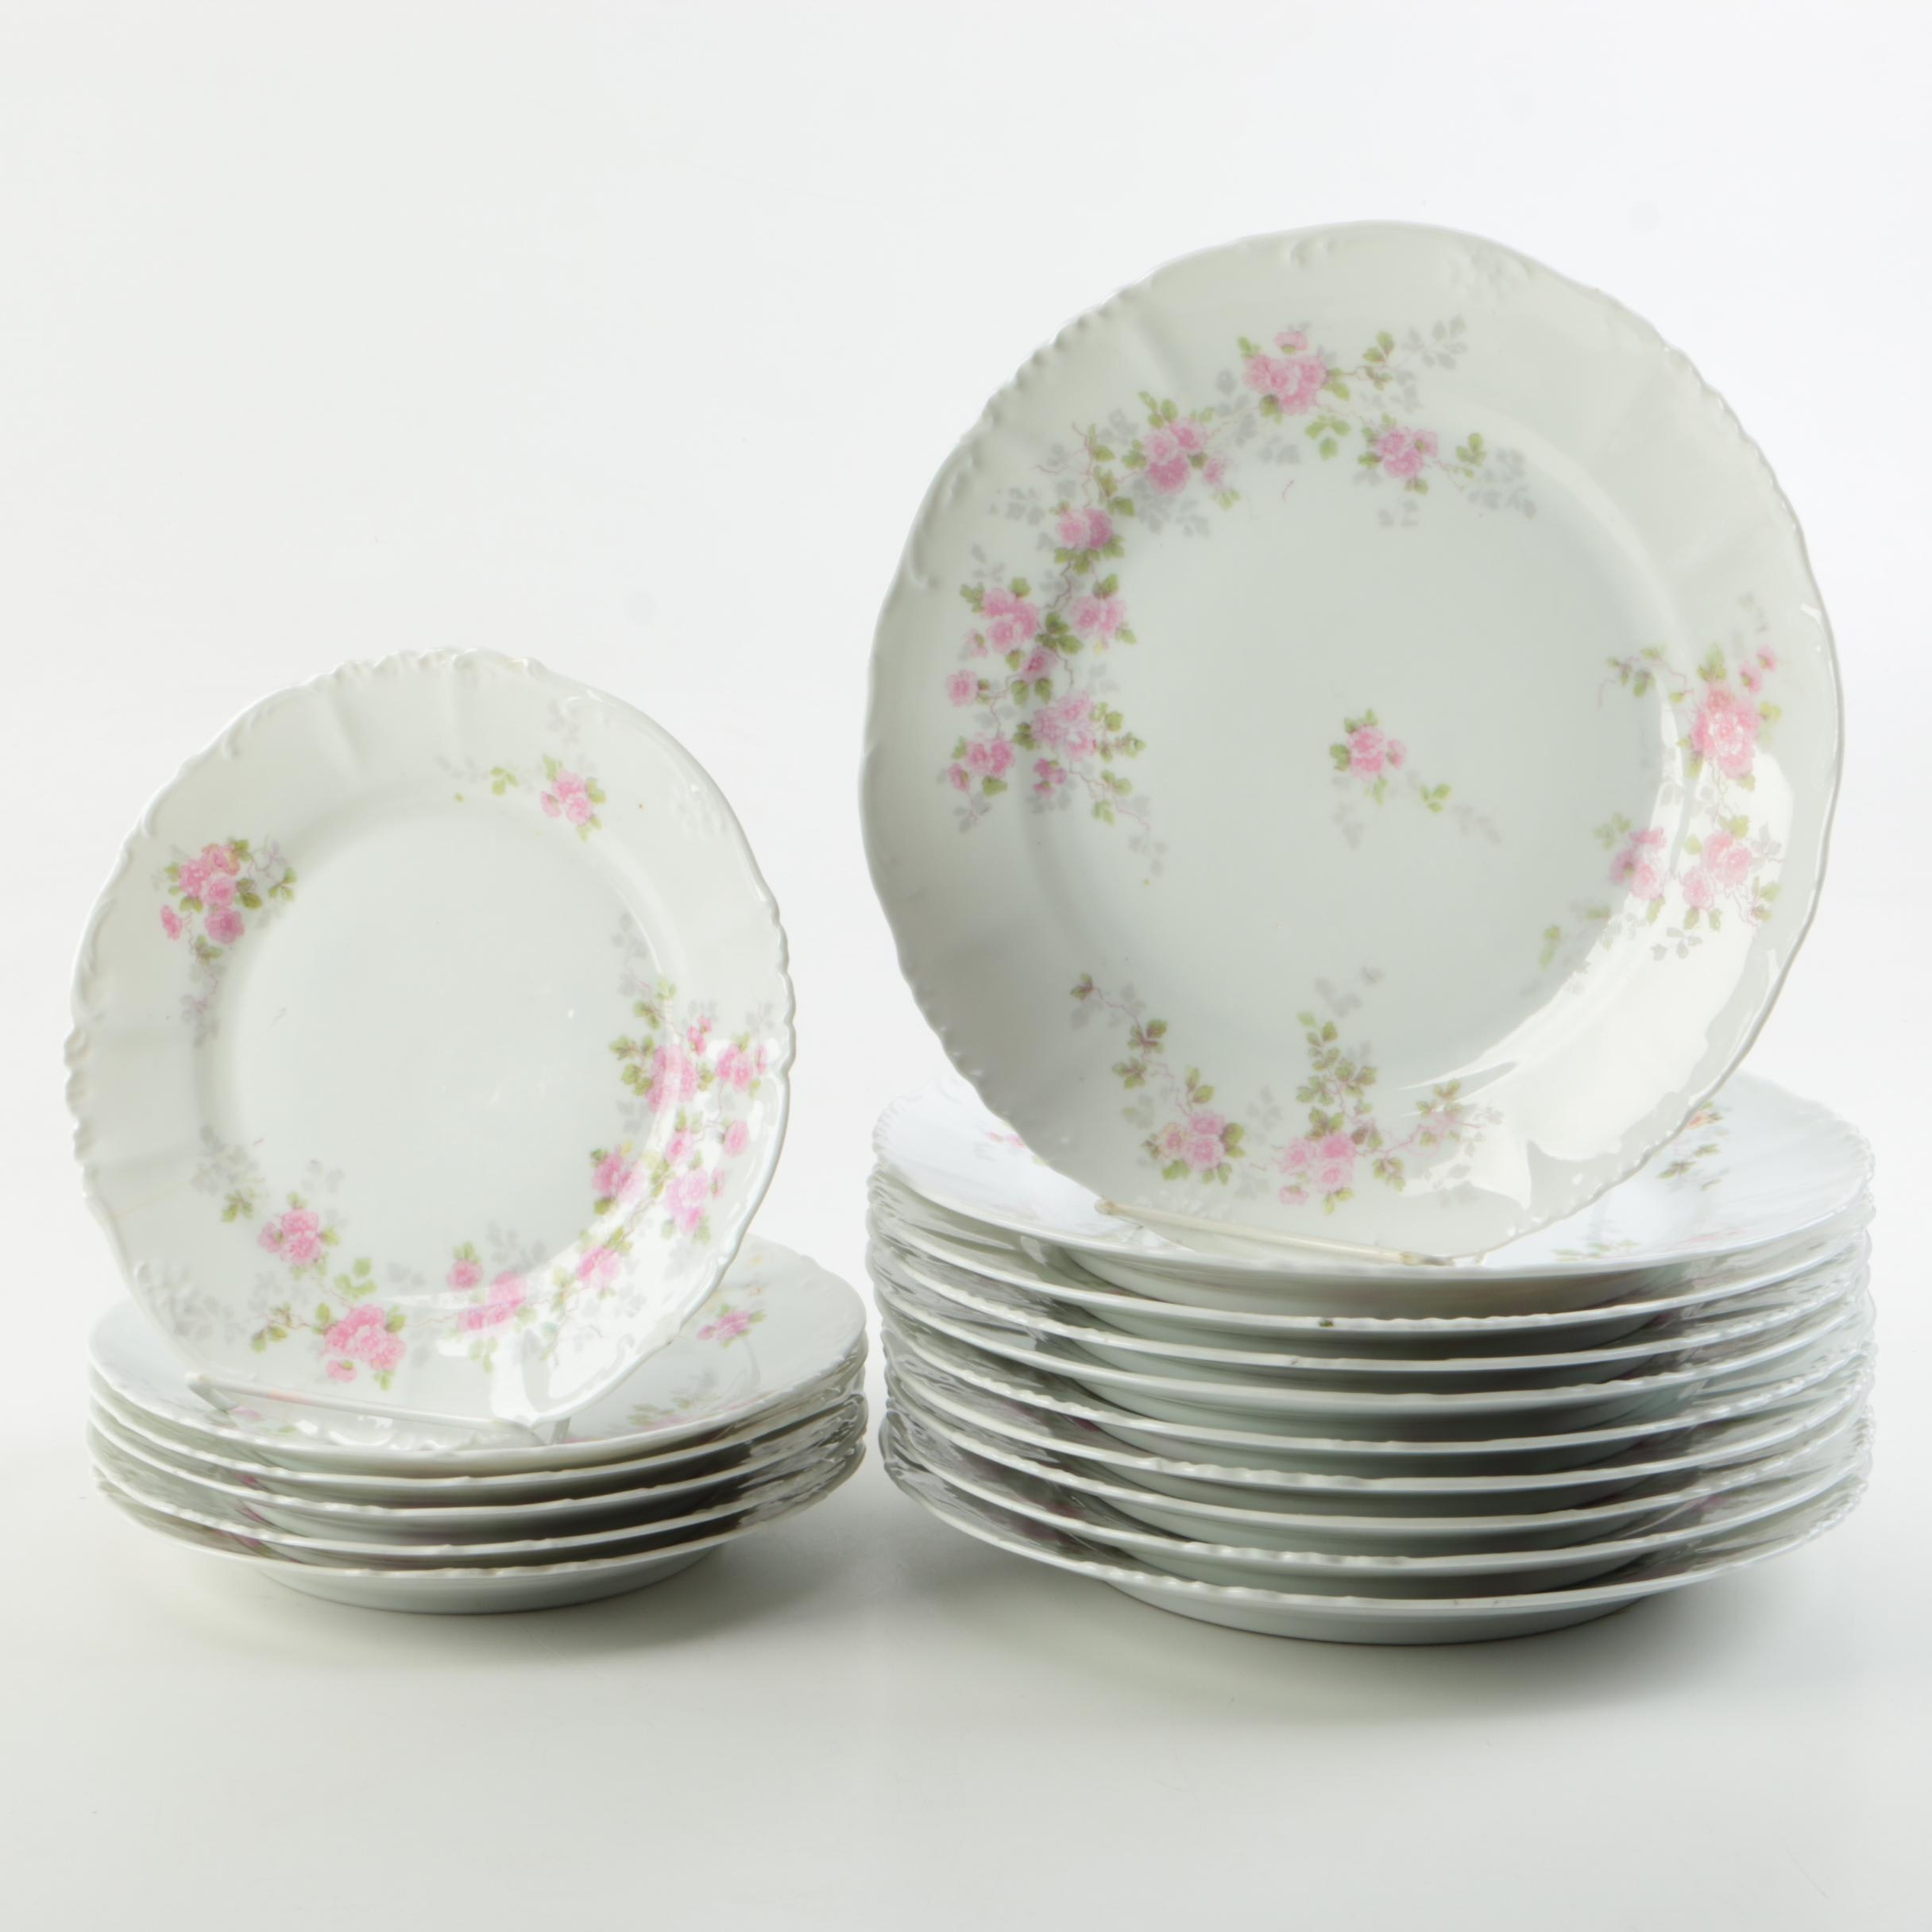 Vintage Imperial H & C Porcelain Plates with Pink Flowers